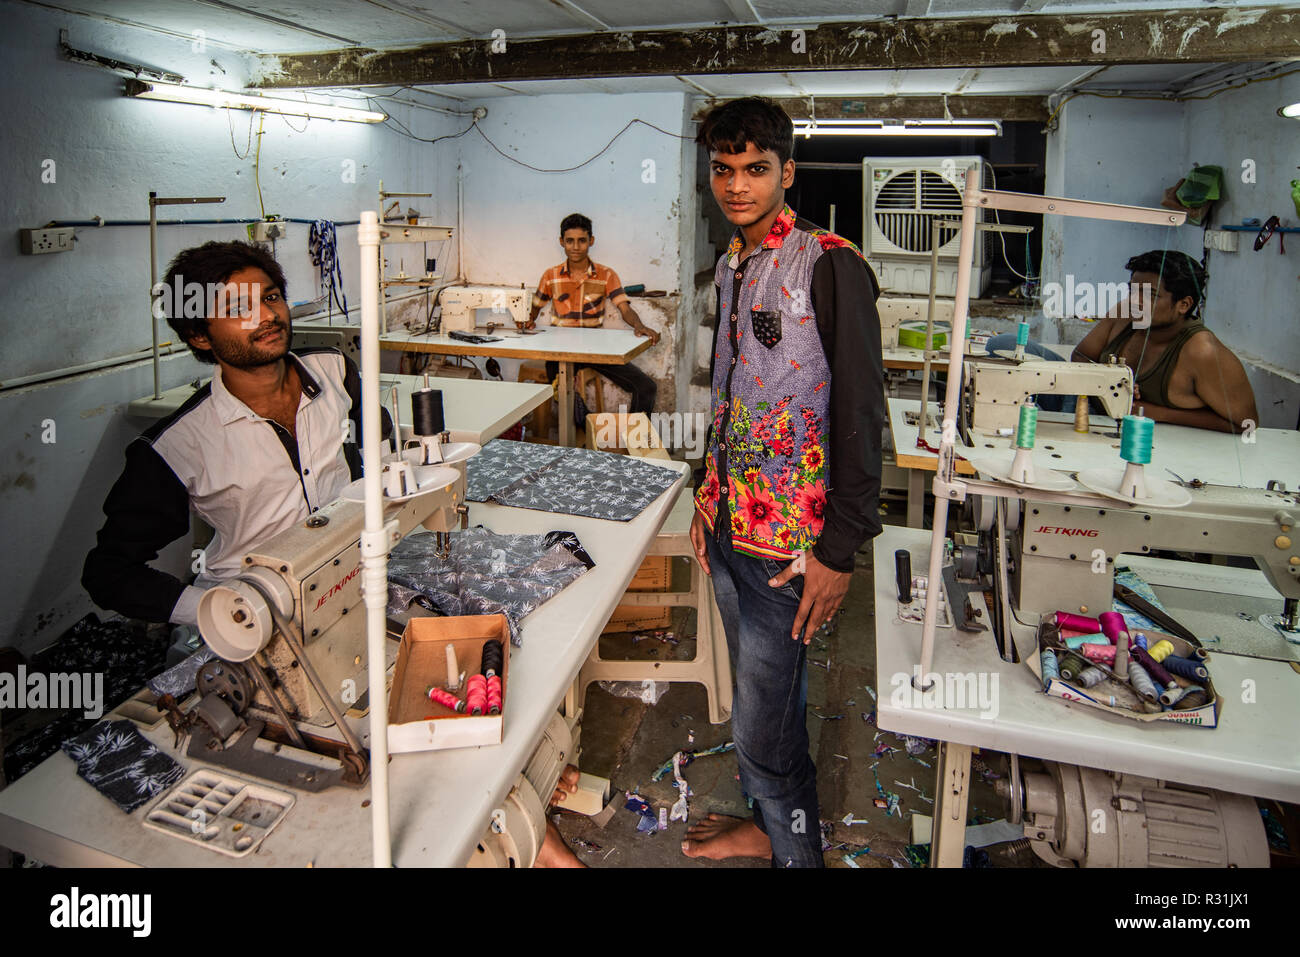 An Ahmedabad tailoring sweatshop with four young tailors, Gujarat, India - Stock Image